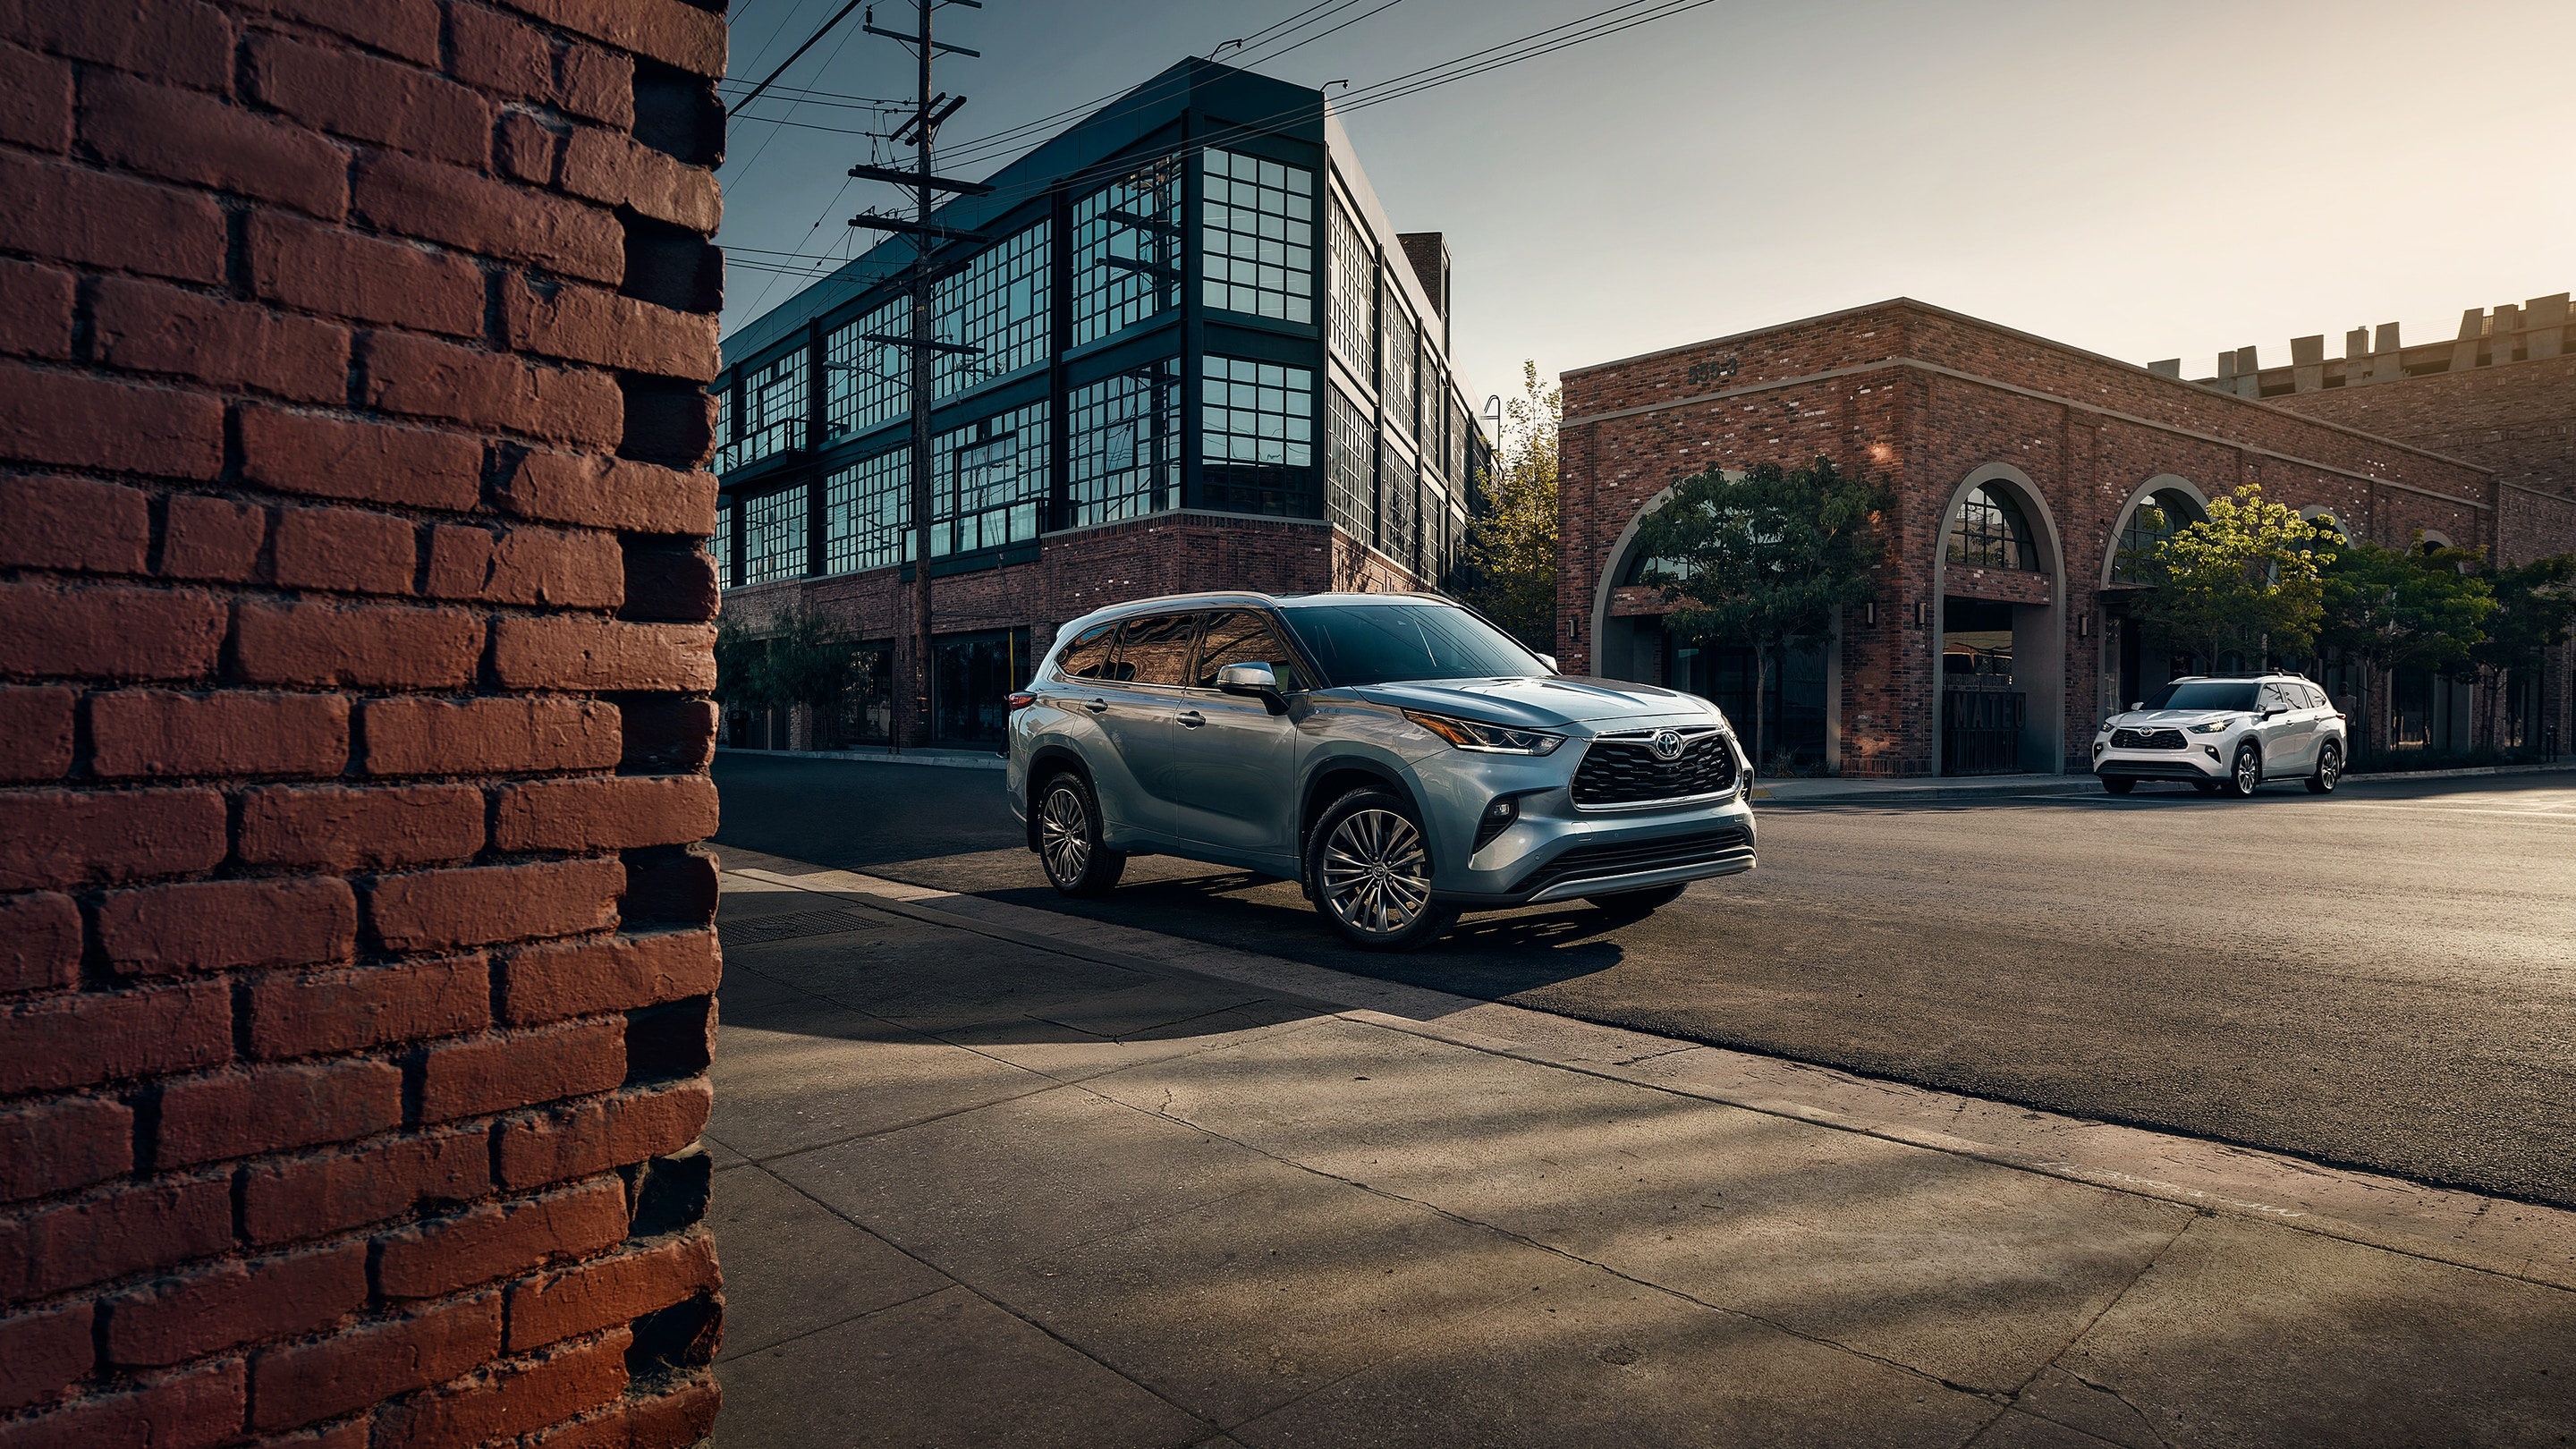 2020 Toyota Highlander Lease in Jamaica, NY